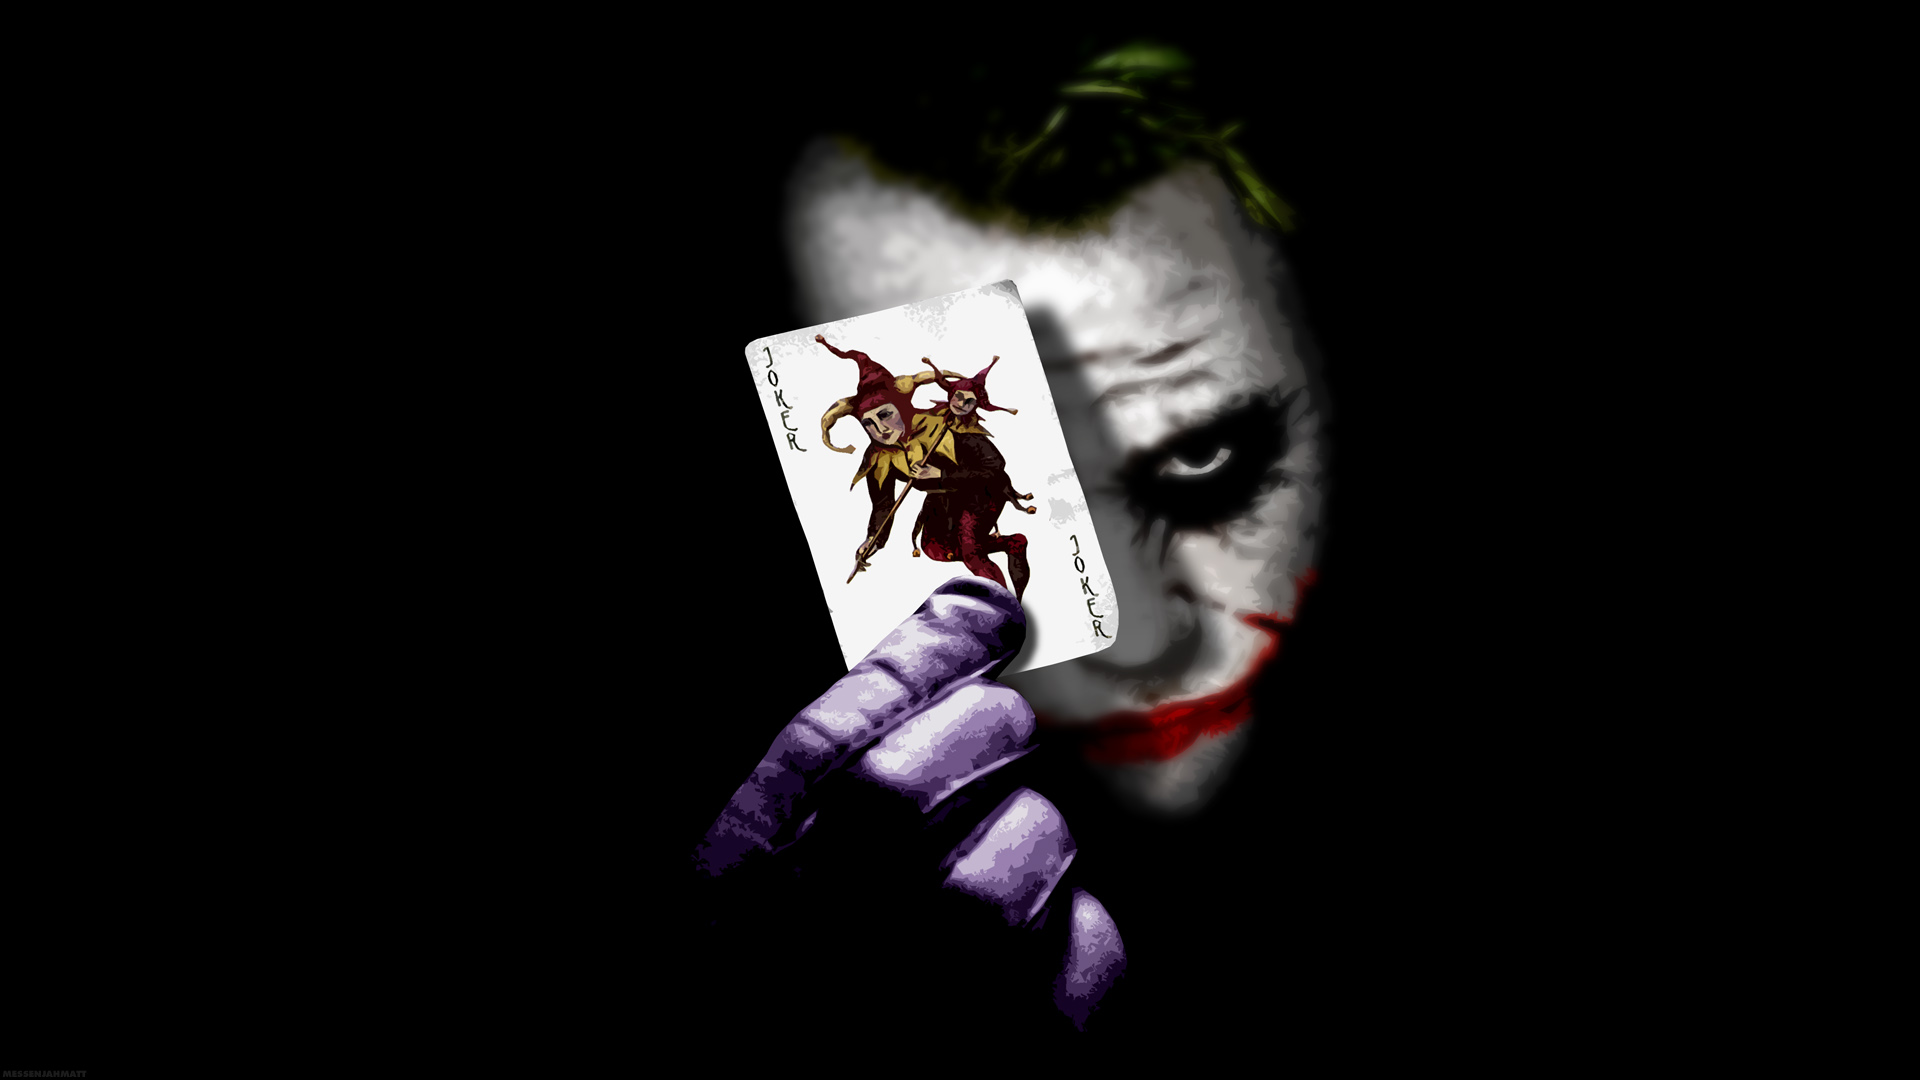 Wallpapers Joker Full Hd The Taringa 1920x1080 172636 joker   ok 1920x1080